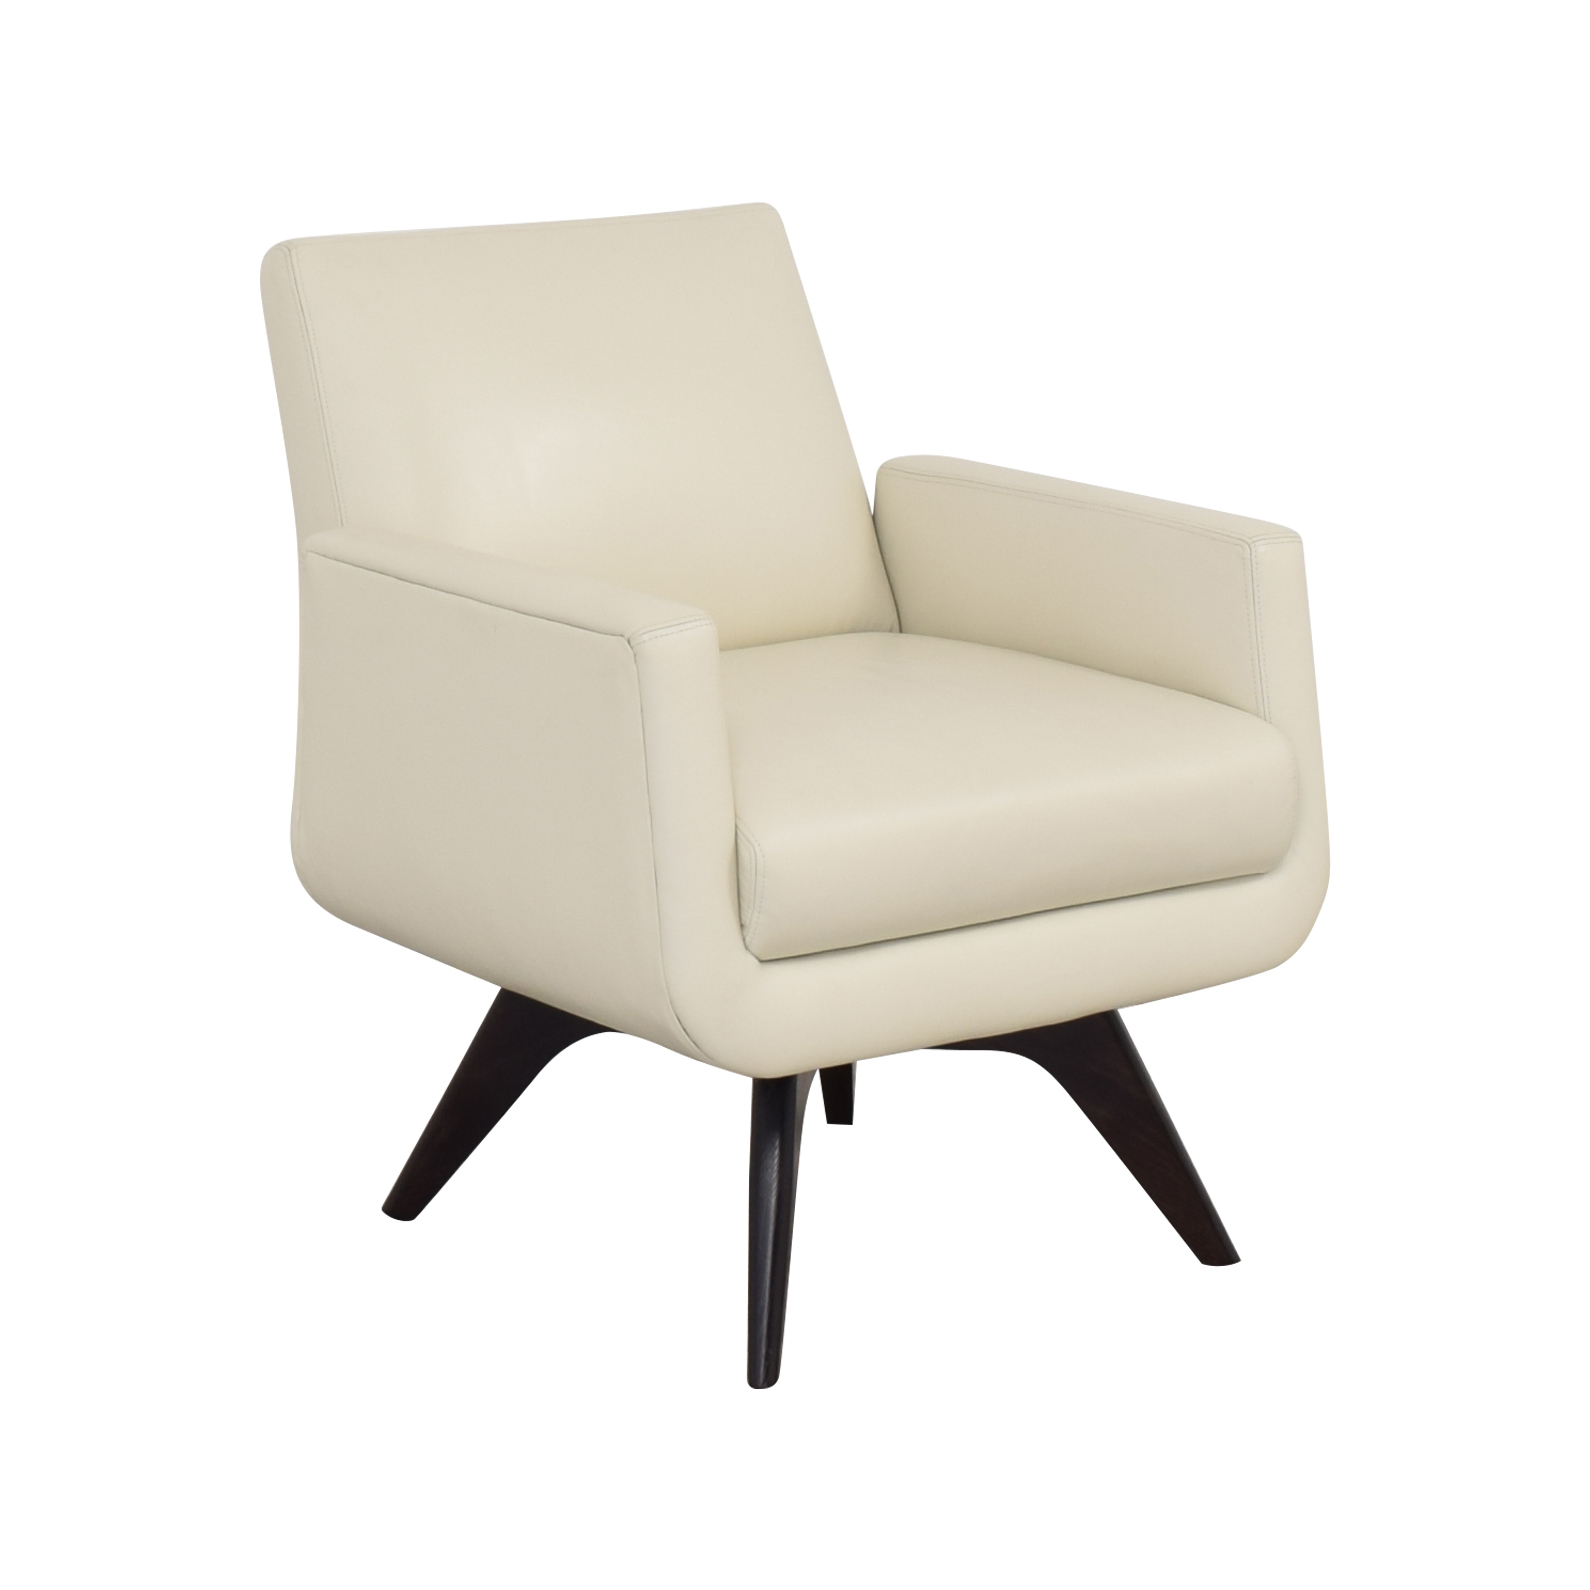 Interlude Home Interlude Home Landon Chair ma